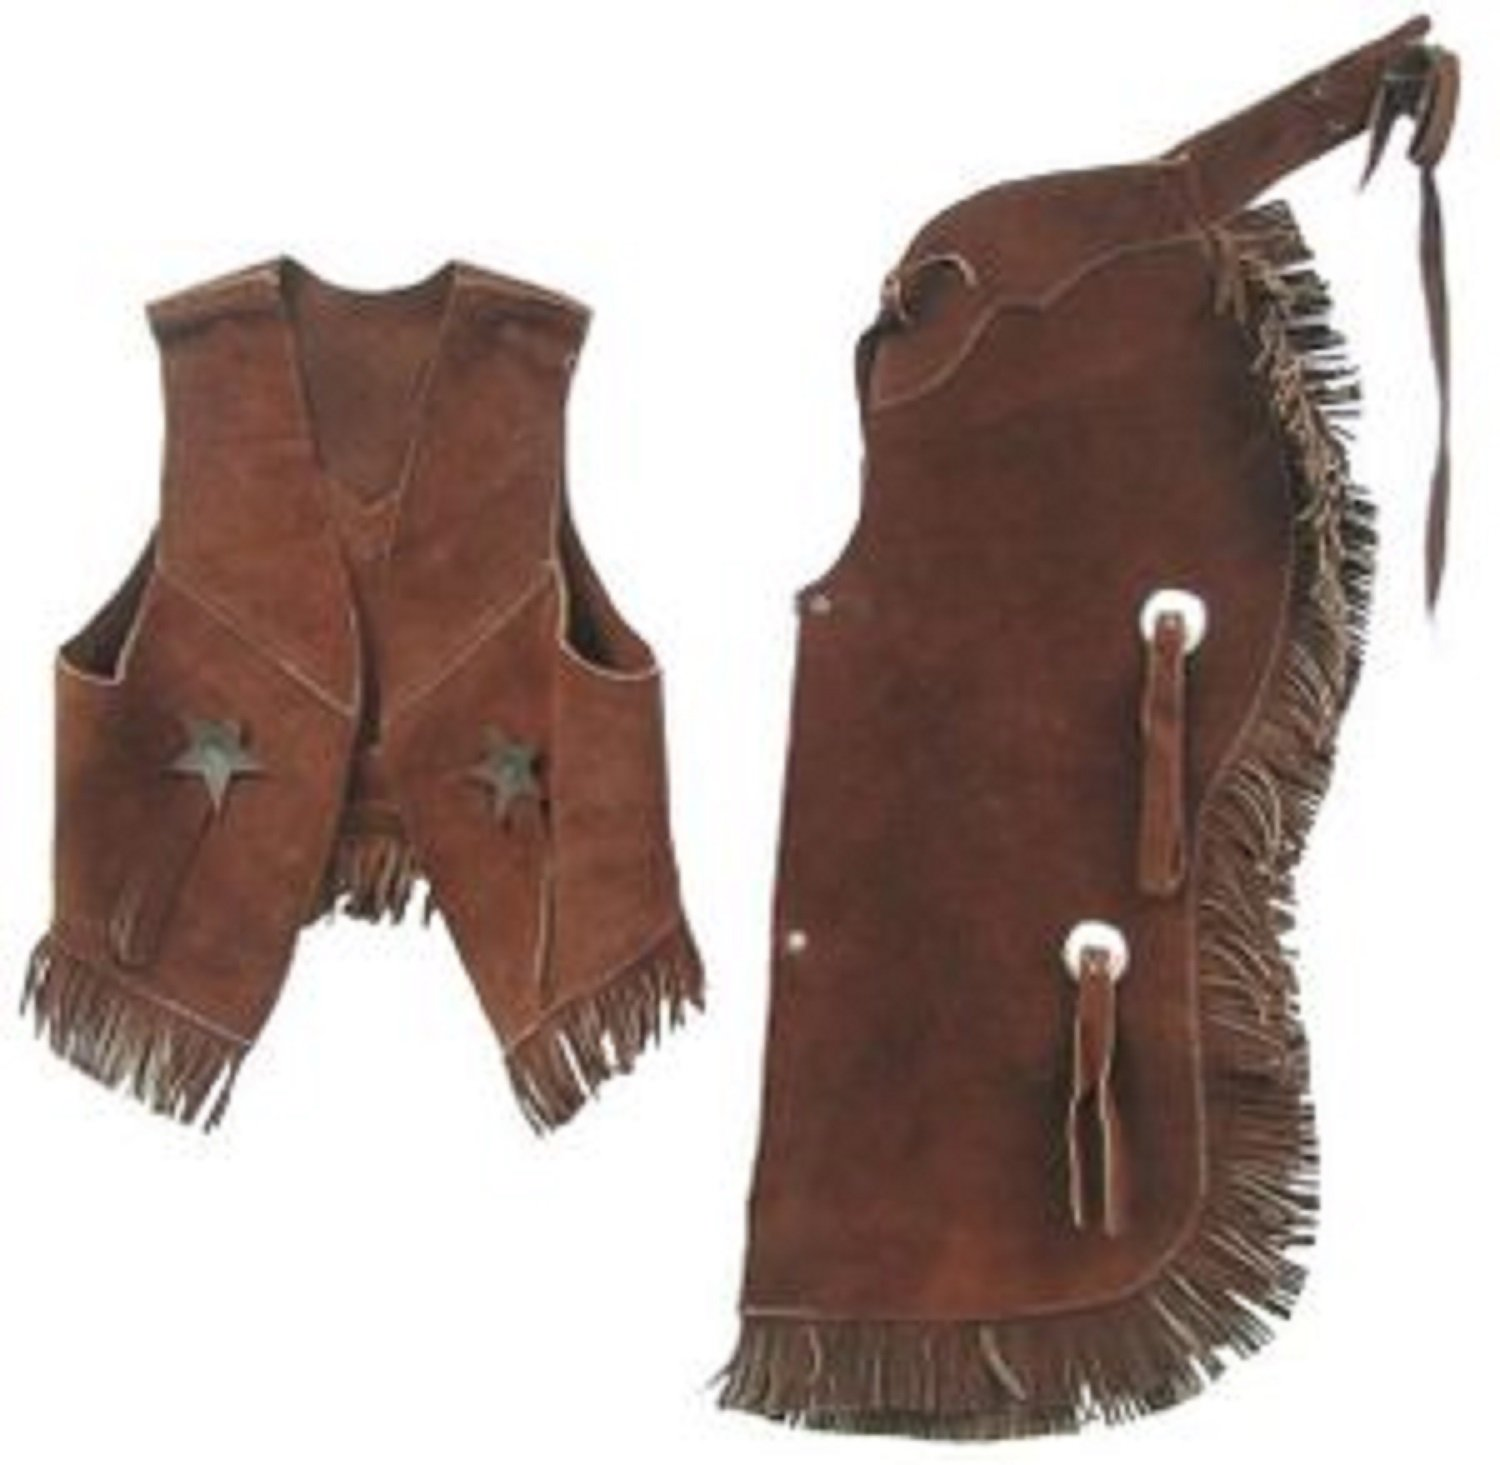 Amazon Childrens Western Vest & Chaps Set black or Brown Suede